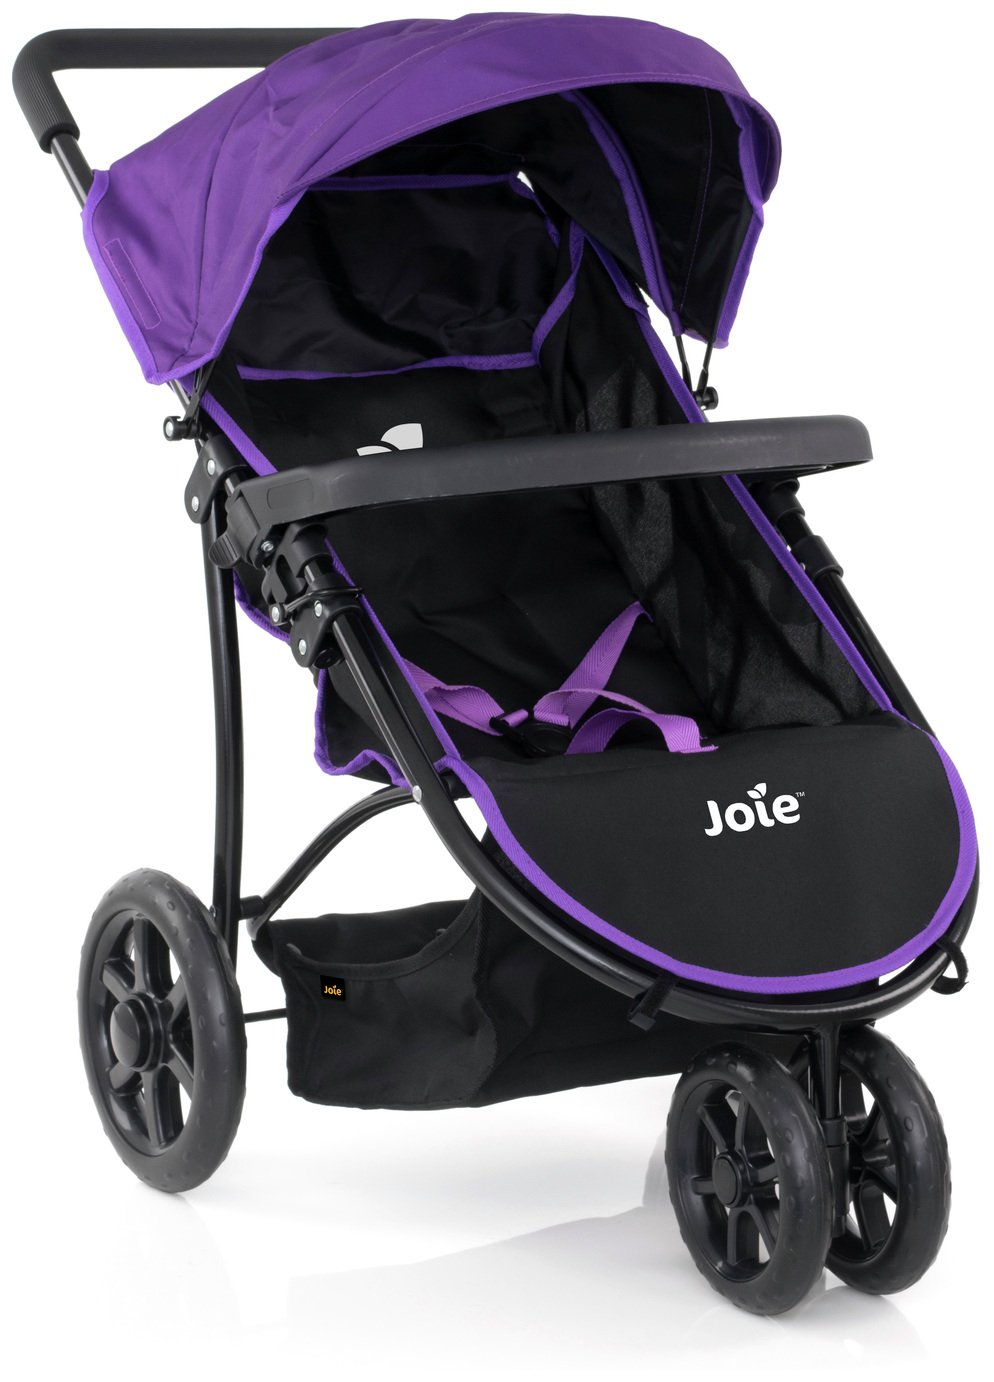 3 Wheel Prams Argos Joie Junior Litetrax 3 Wheel Doll Pushchair